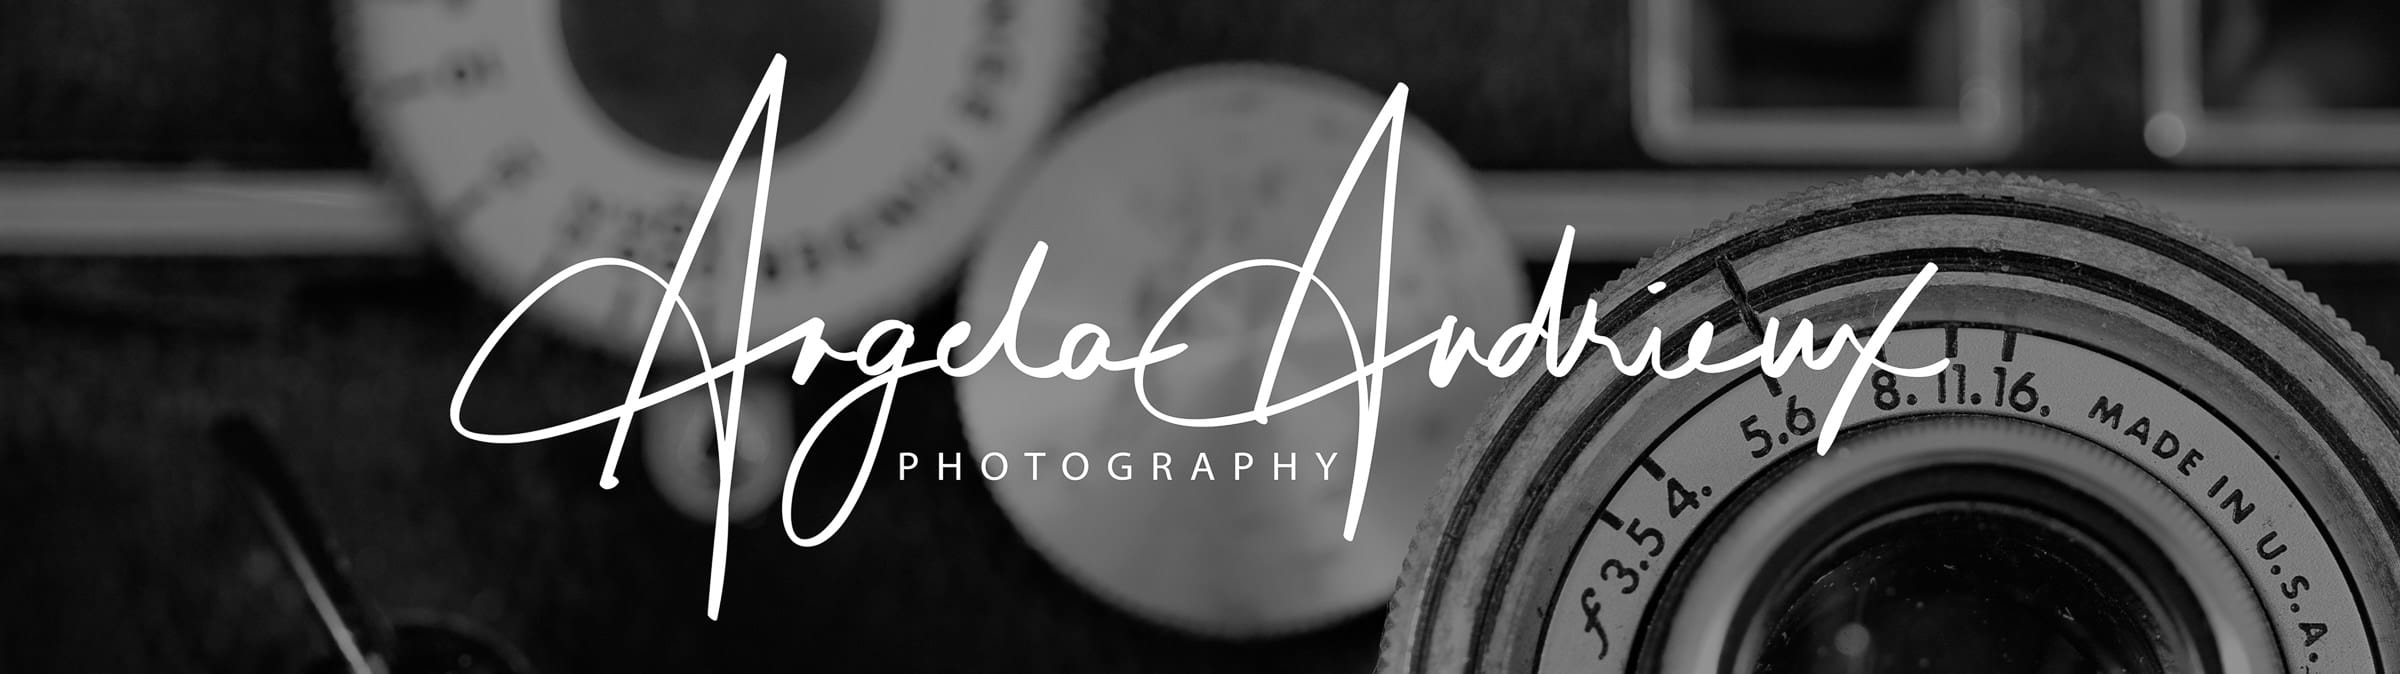 Vintage Argus Rangefinder Camera, aka - The Brick with Angela Andrieux Photography logo